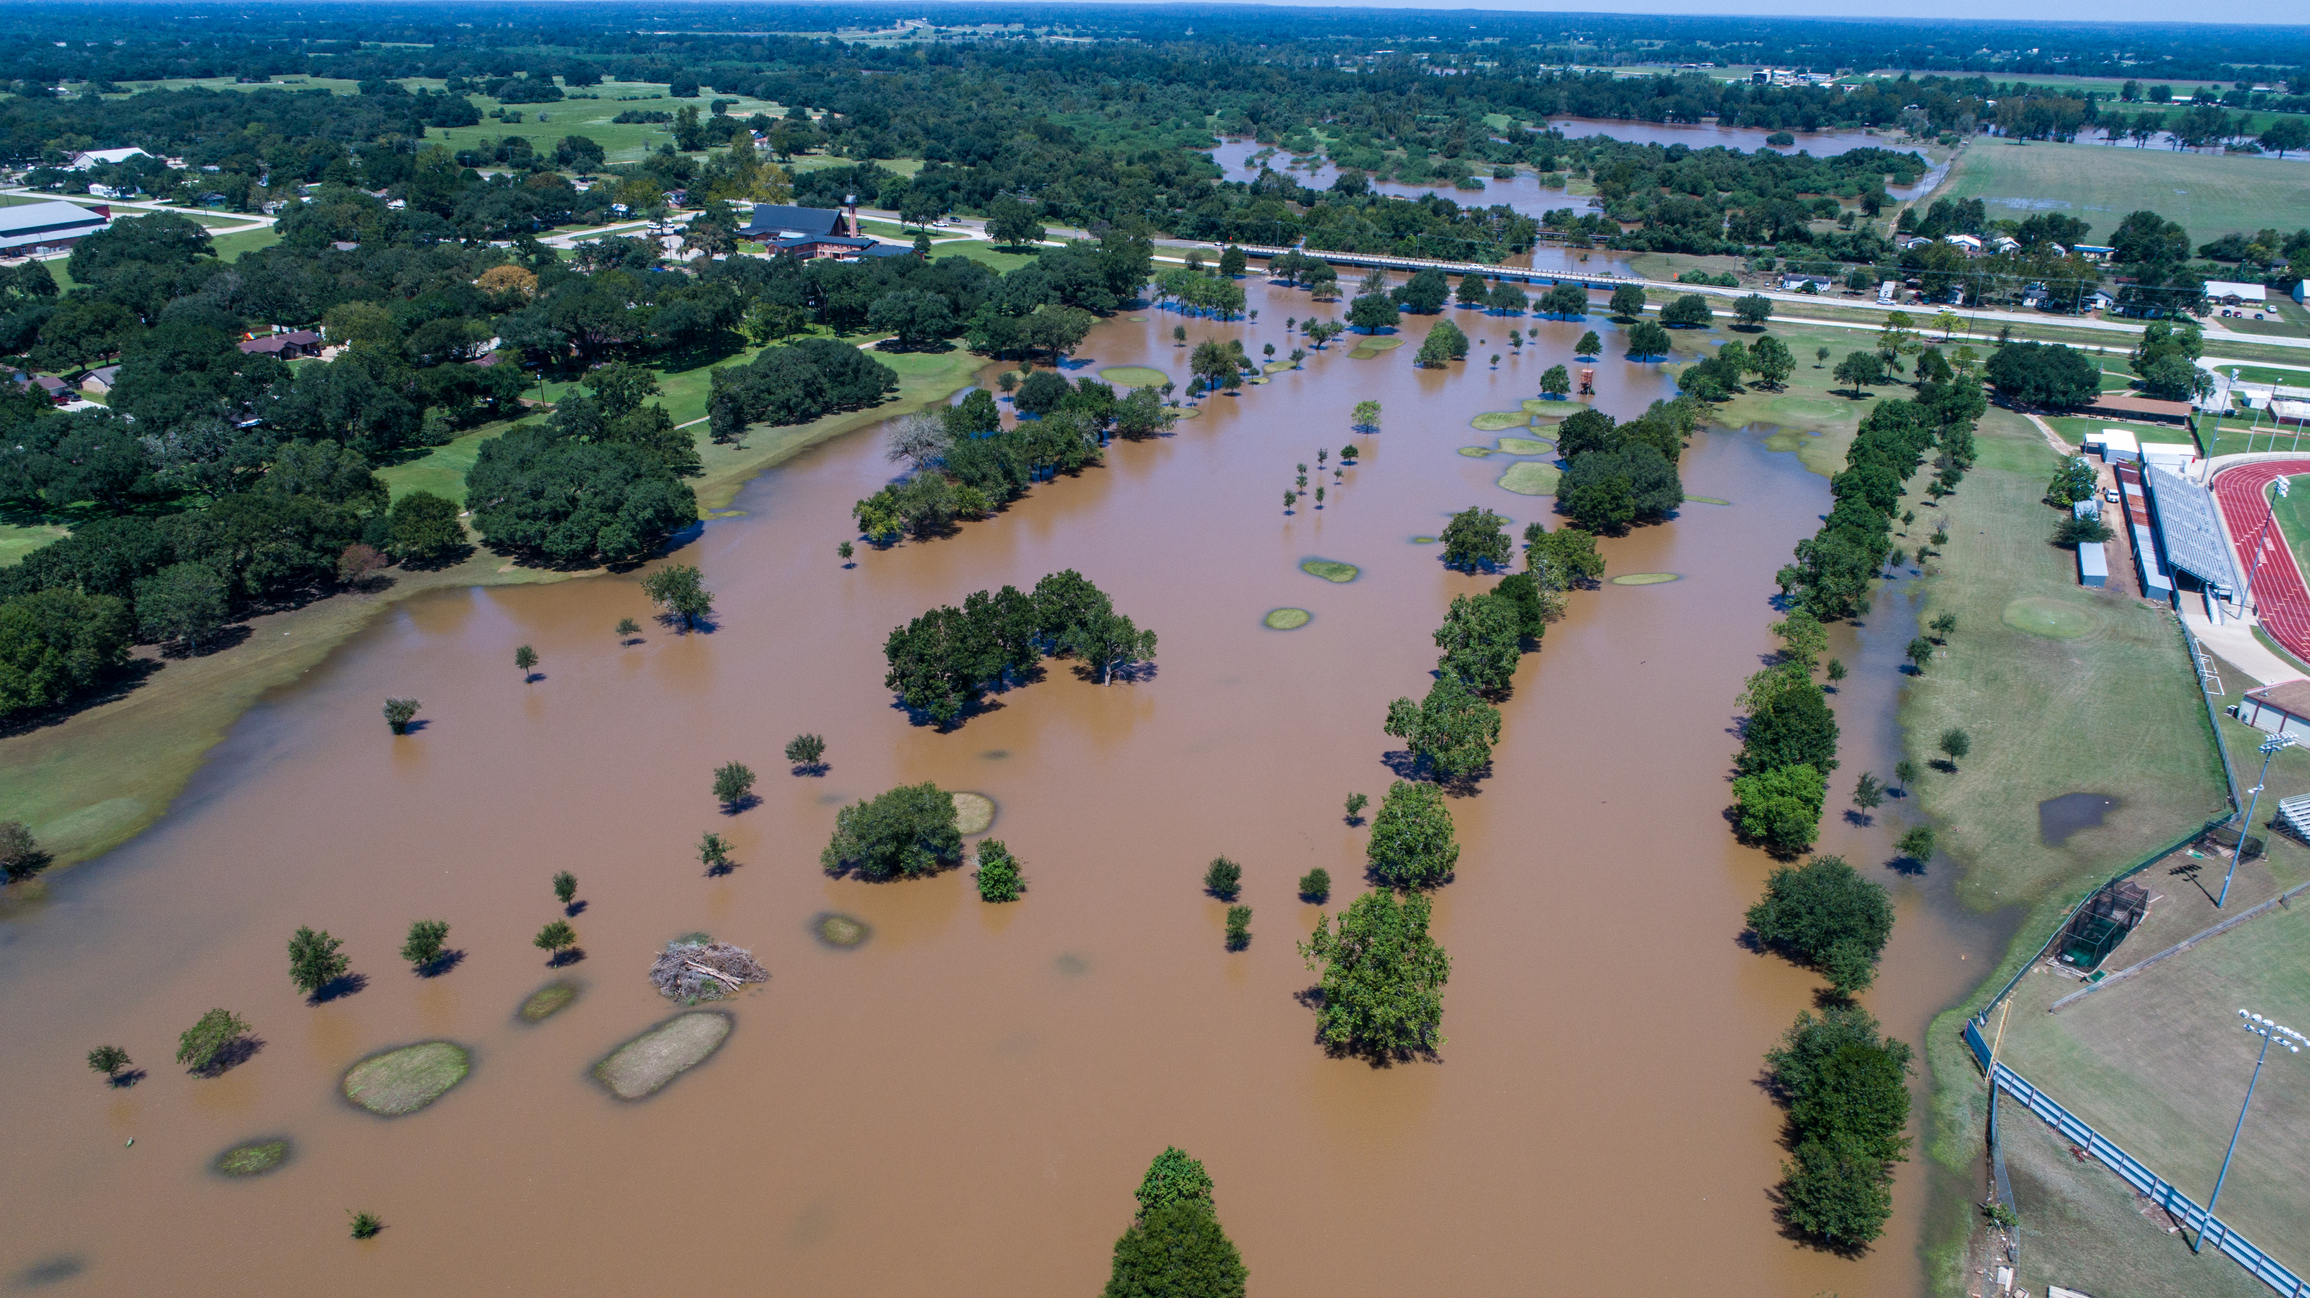 Aerial mapping of natural disaster area showing brown flood water inundating area with a lot of trees